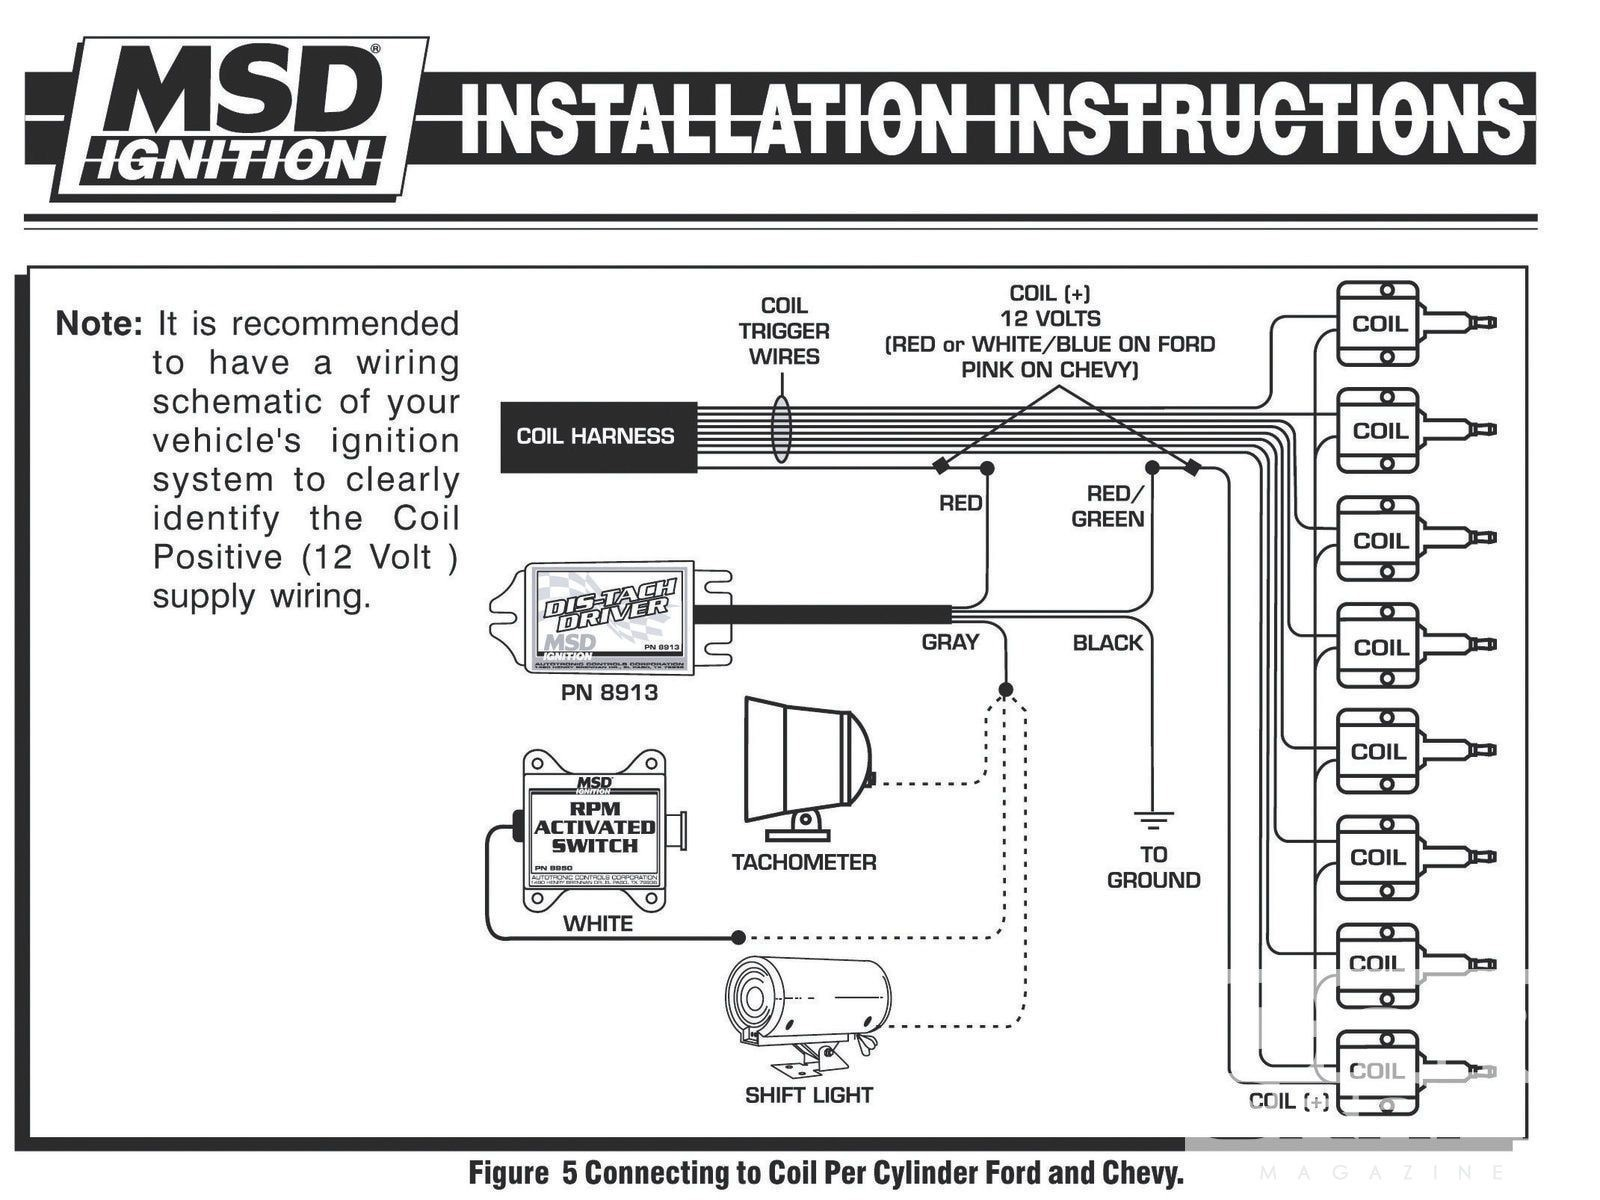 Autometer Tach Wiring Diagram New fortable Auto Meter Street Tach Wiring Diagram S